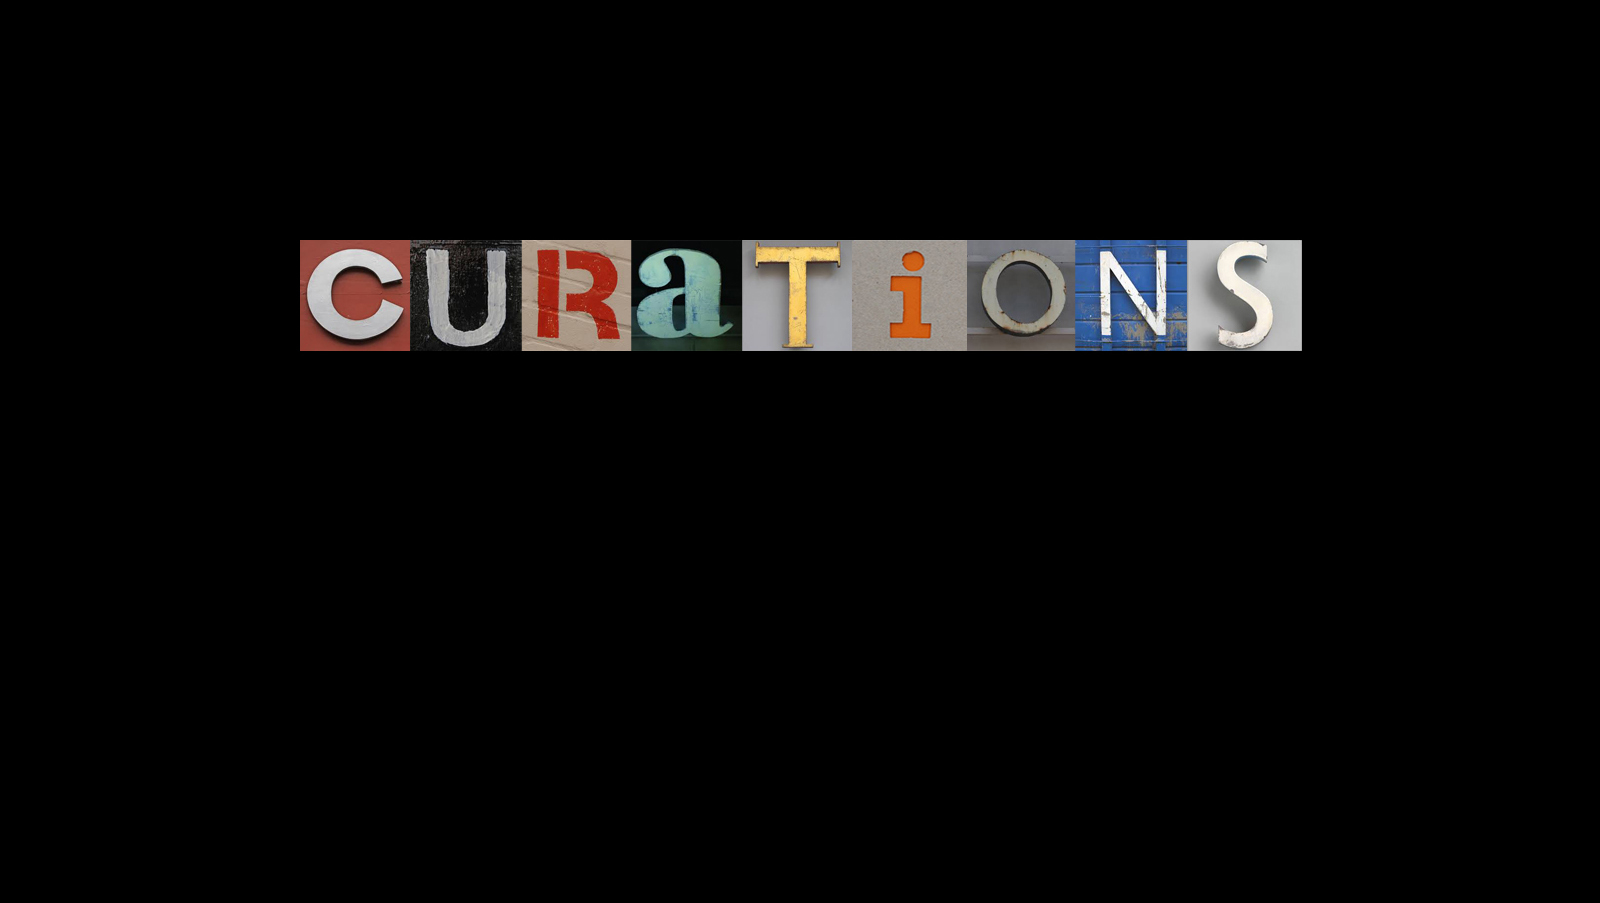 Companies: Curations